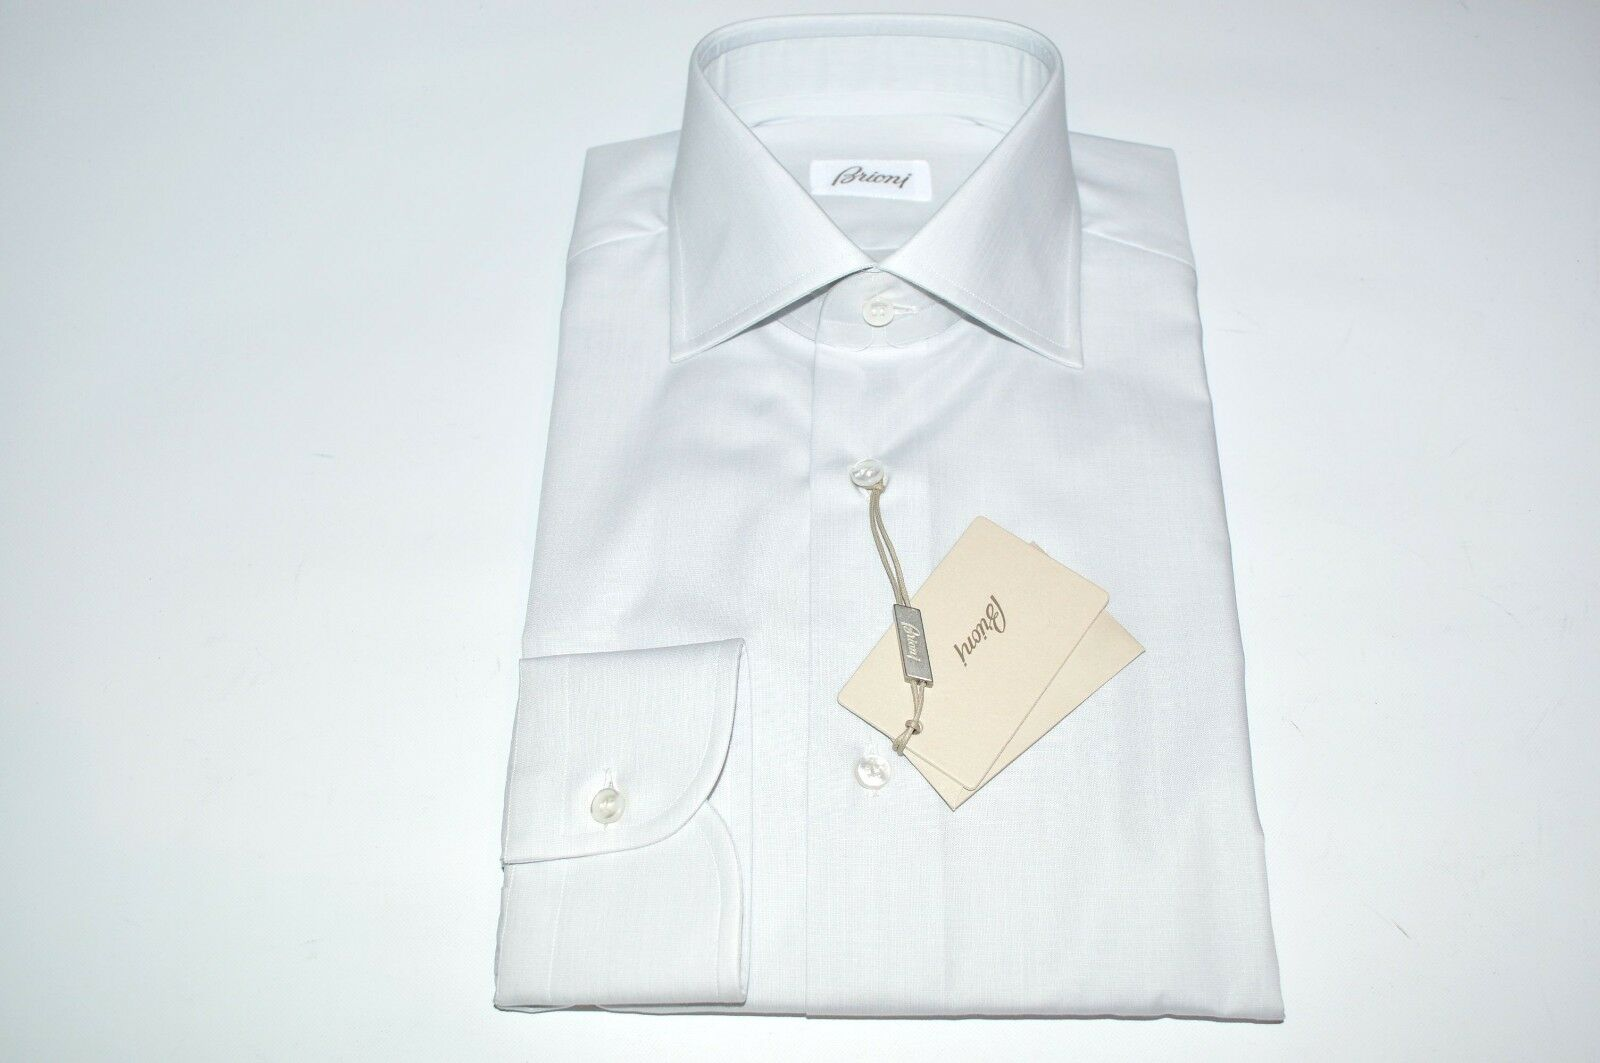 NEW  BRIONI Dress SHIRT 100% Cotton Size 16 Us 41 Eu (Store cod FE3)